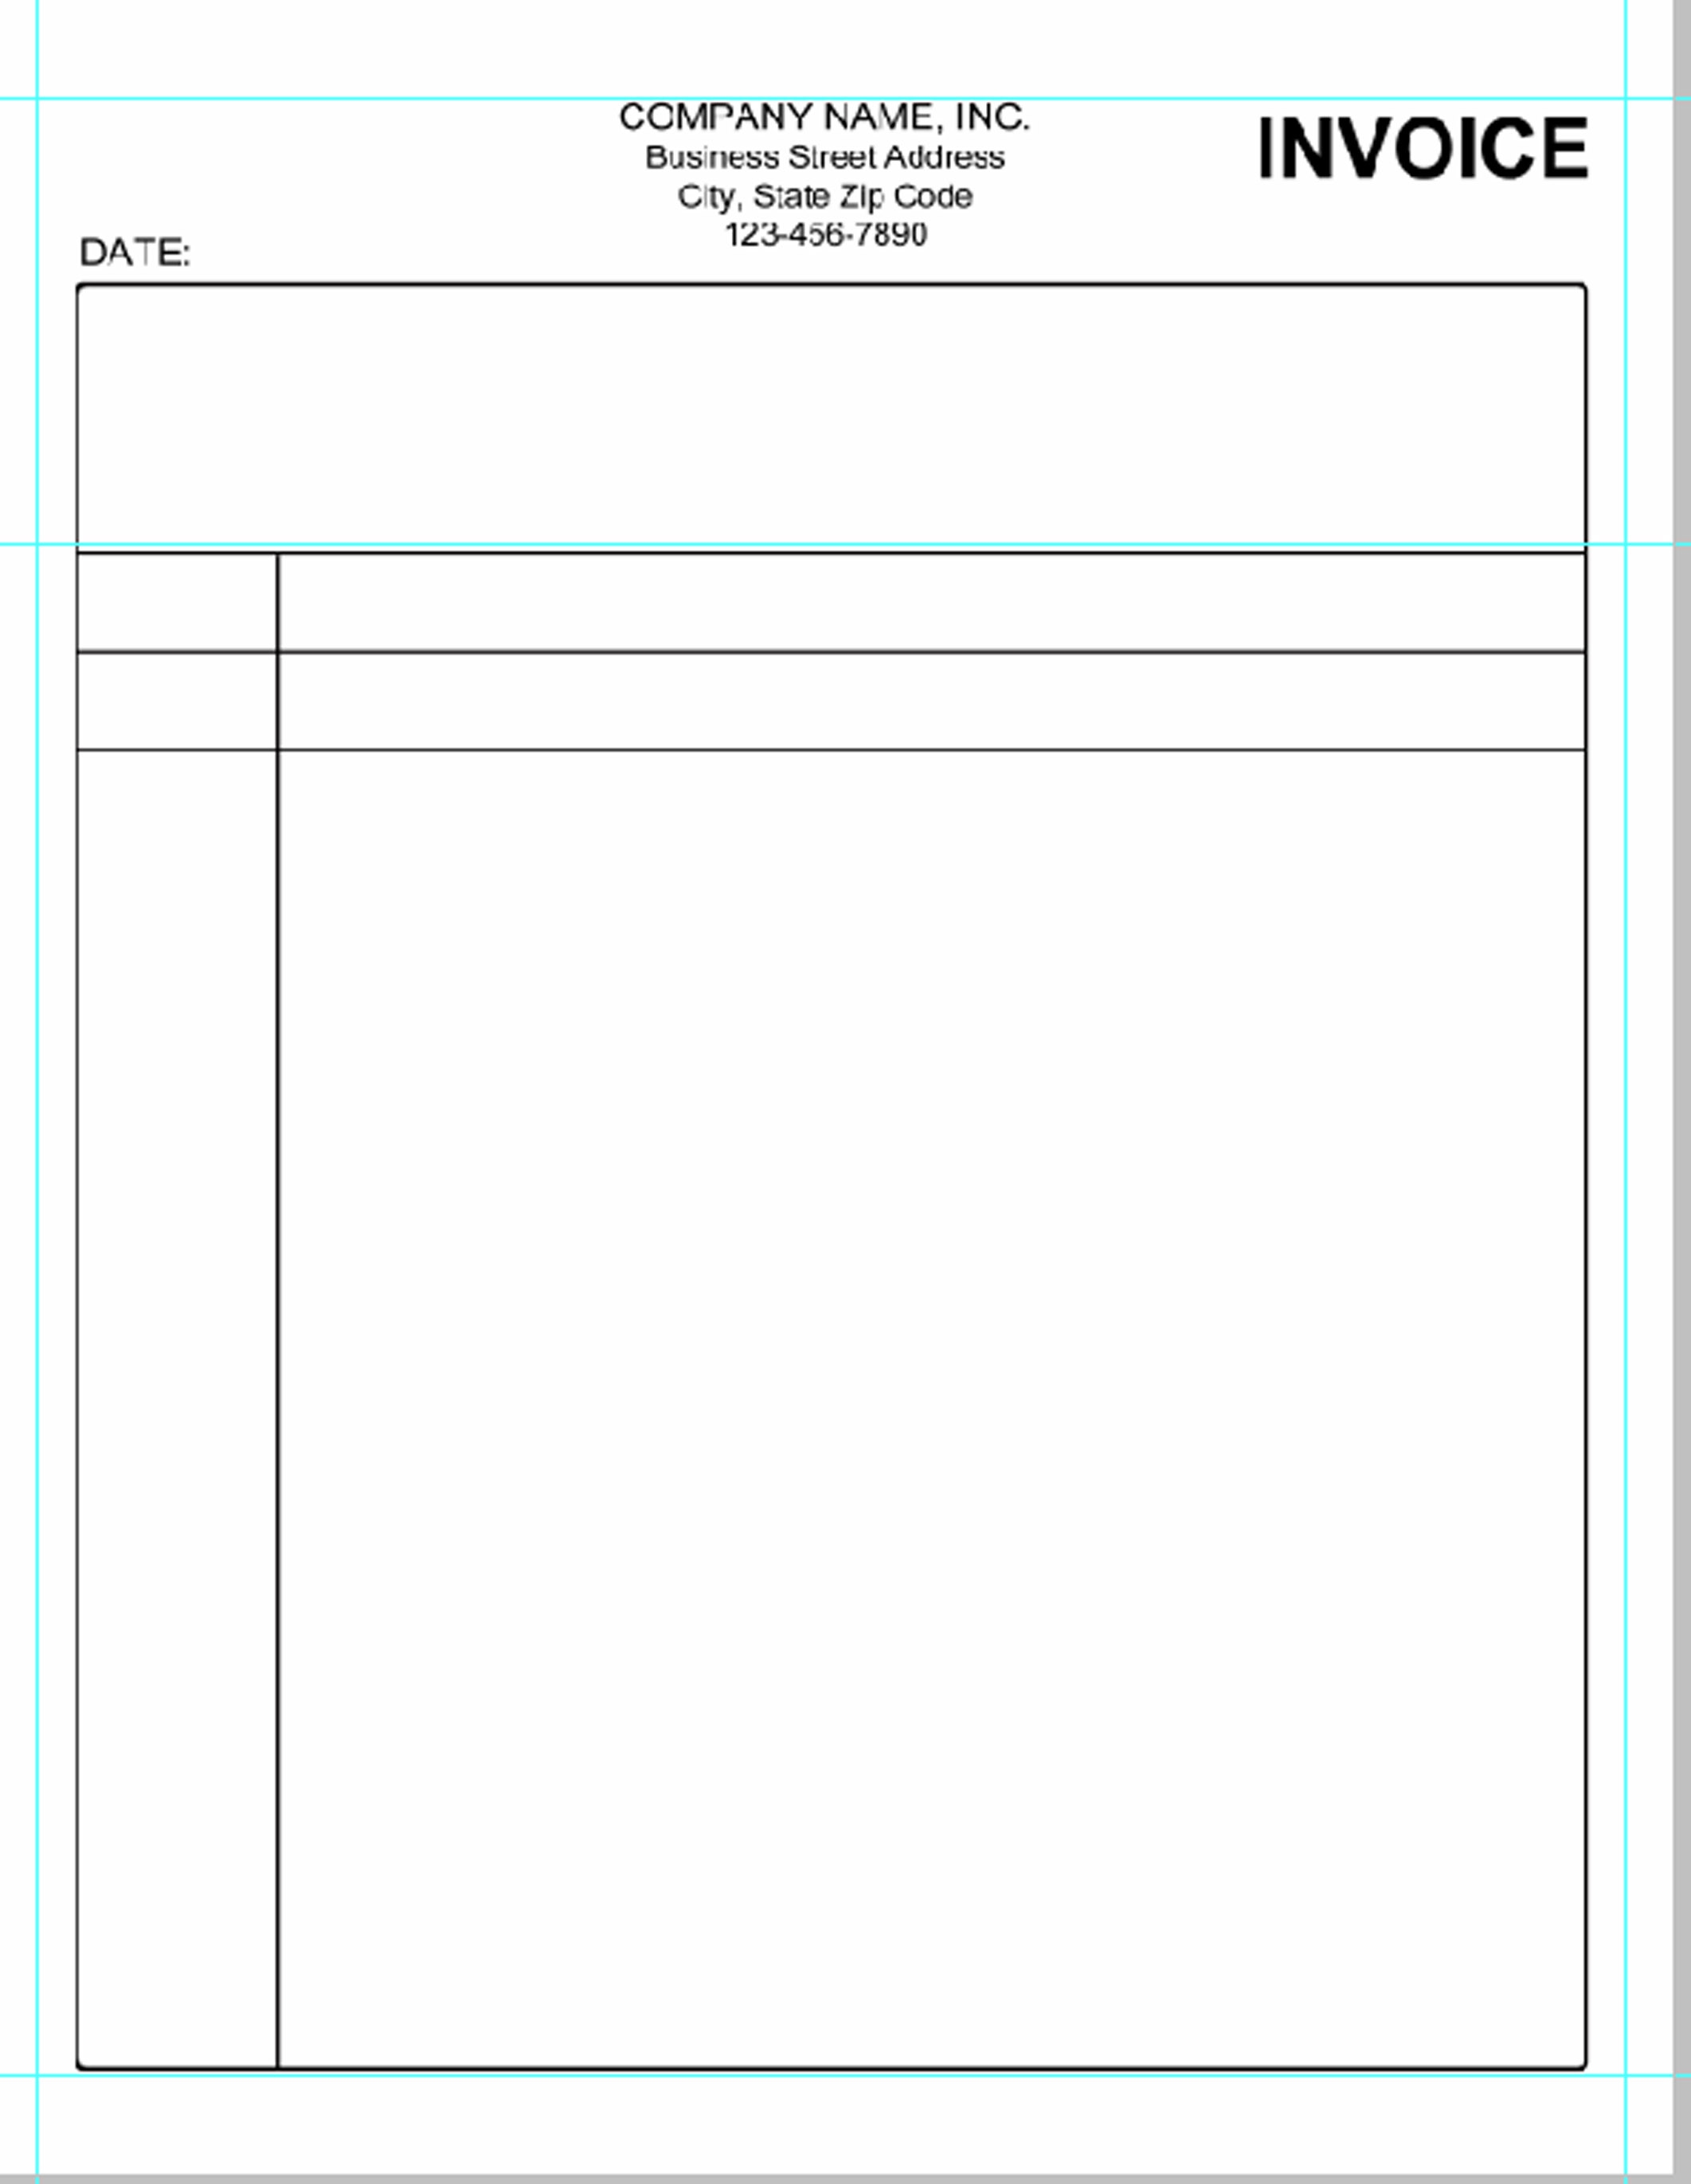 spreadhseets invoice blank 5 blank invoice templates word excel blank invoice download